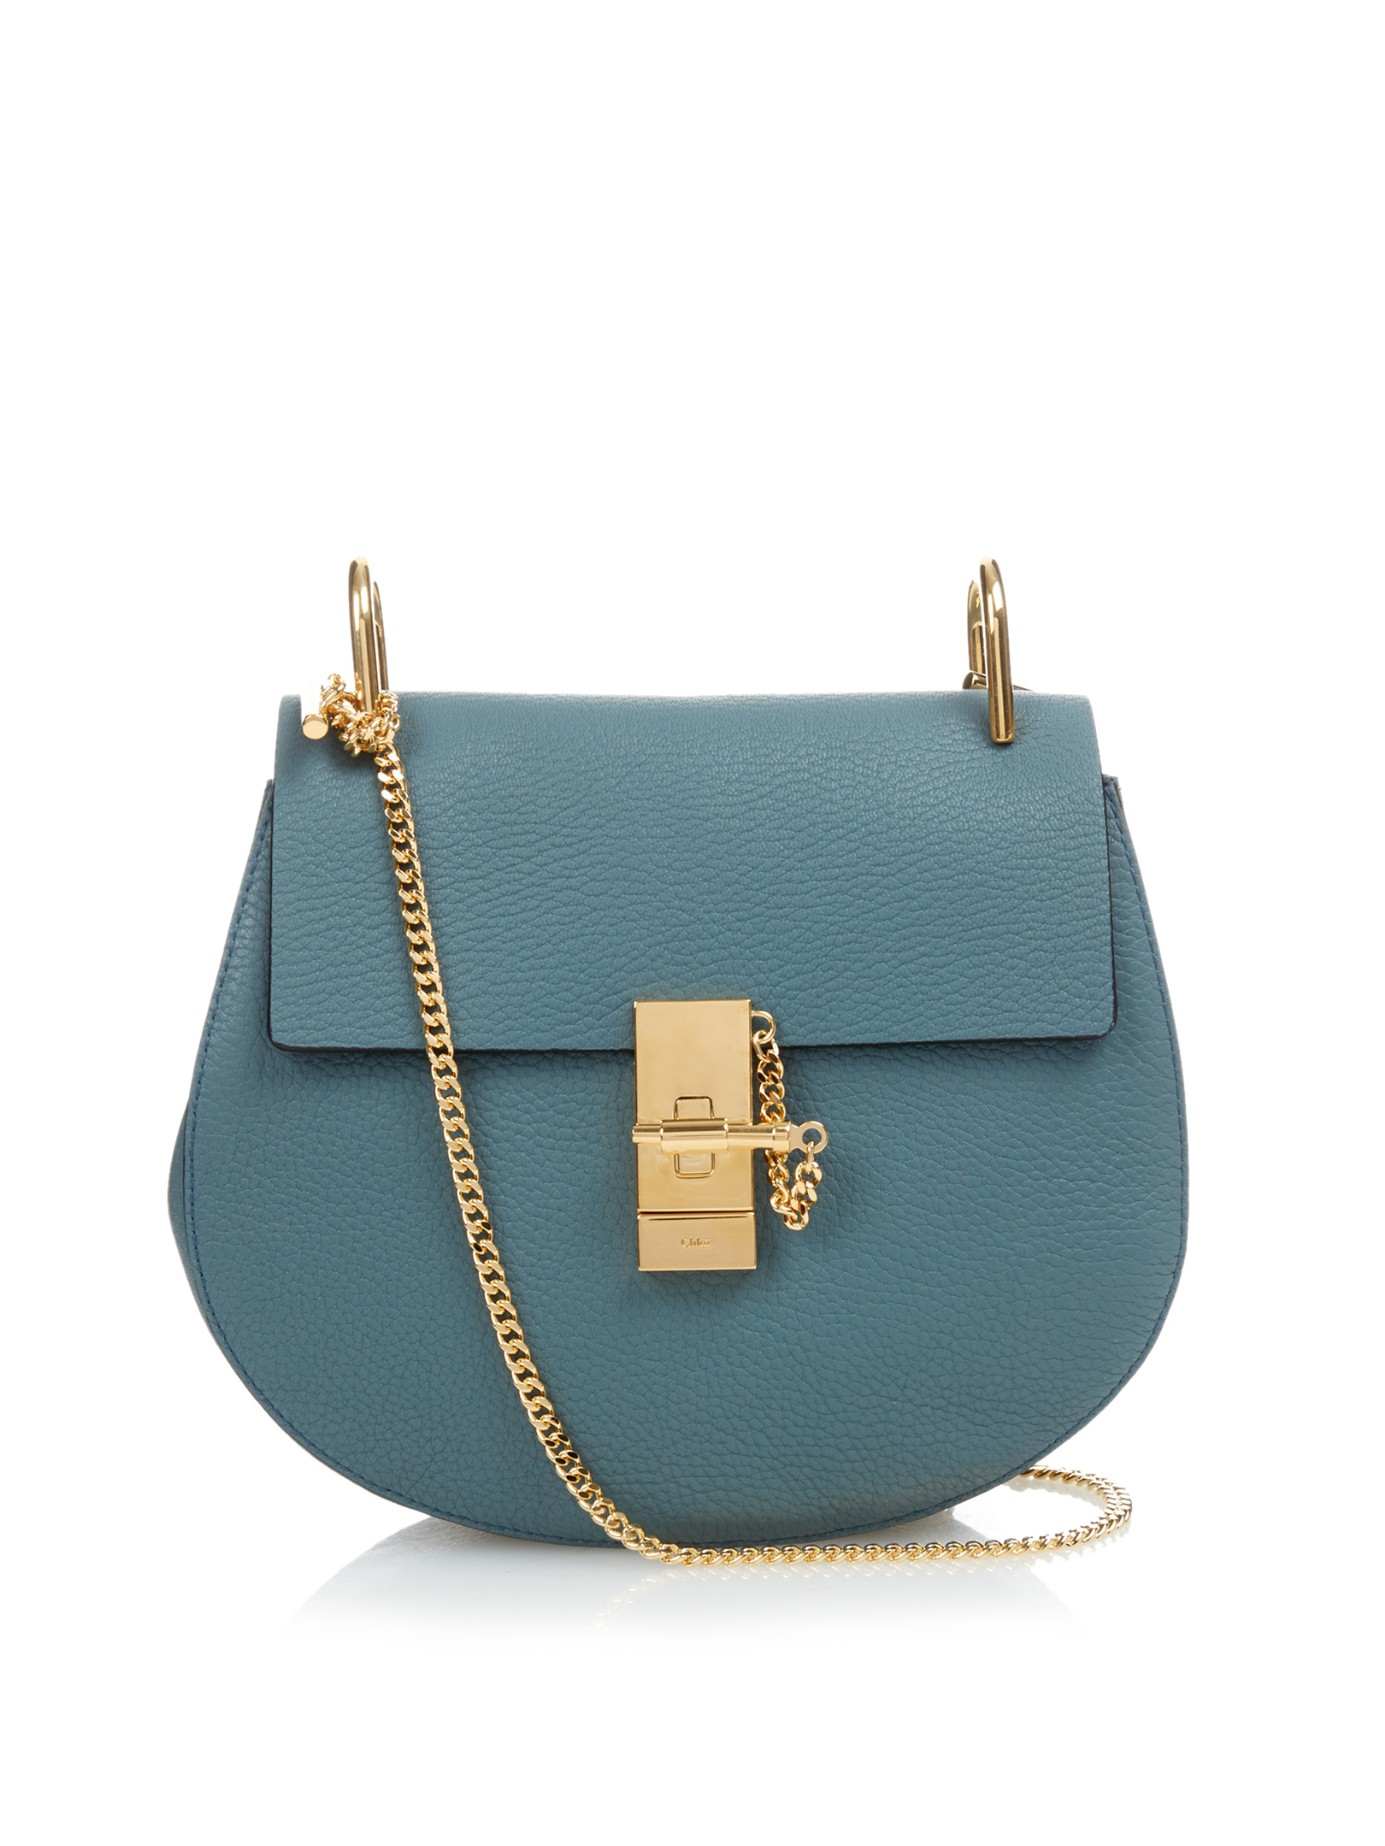 chloe it bags - chloe drew small embellished leather crossbody bag, fake chloe handbag